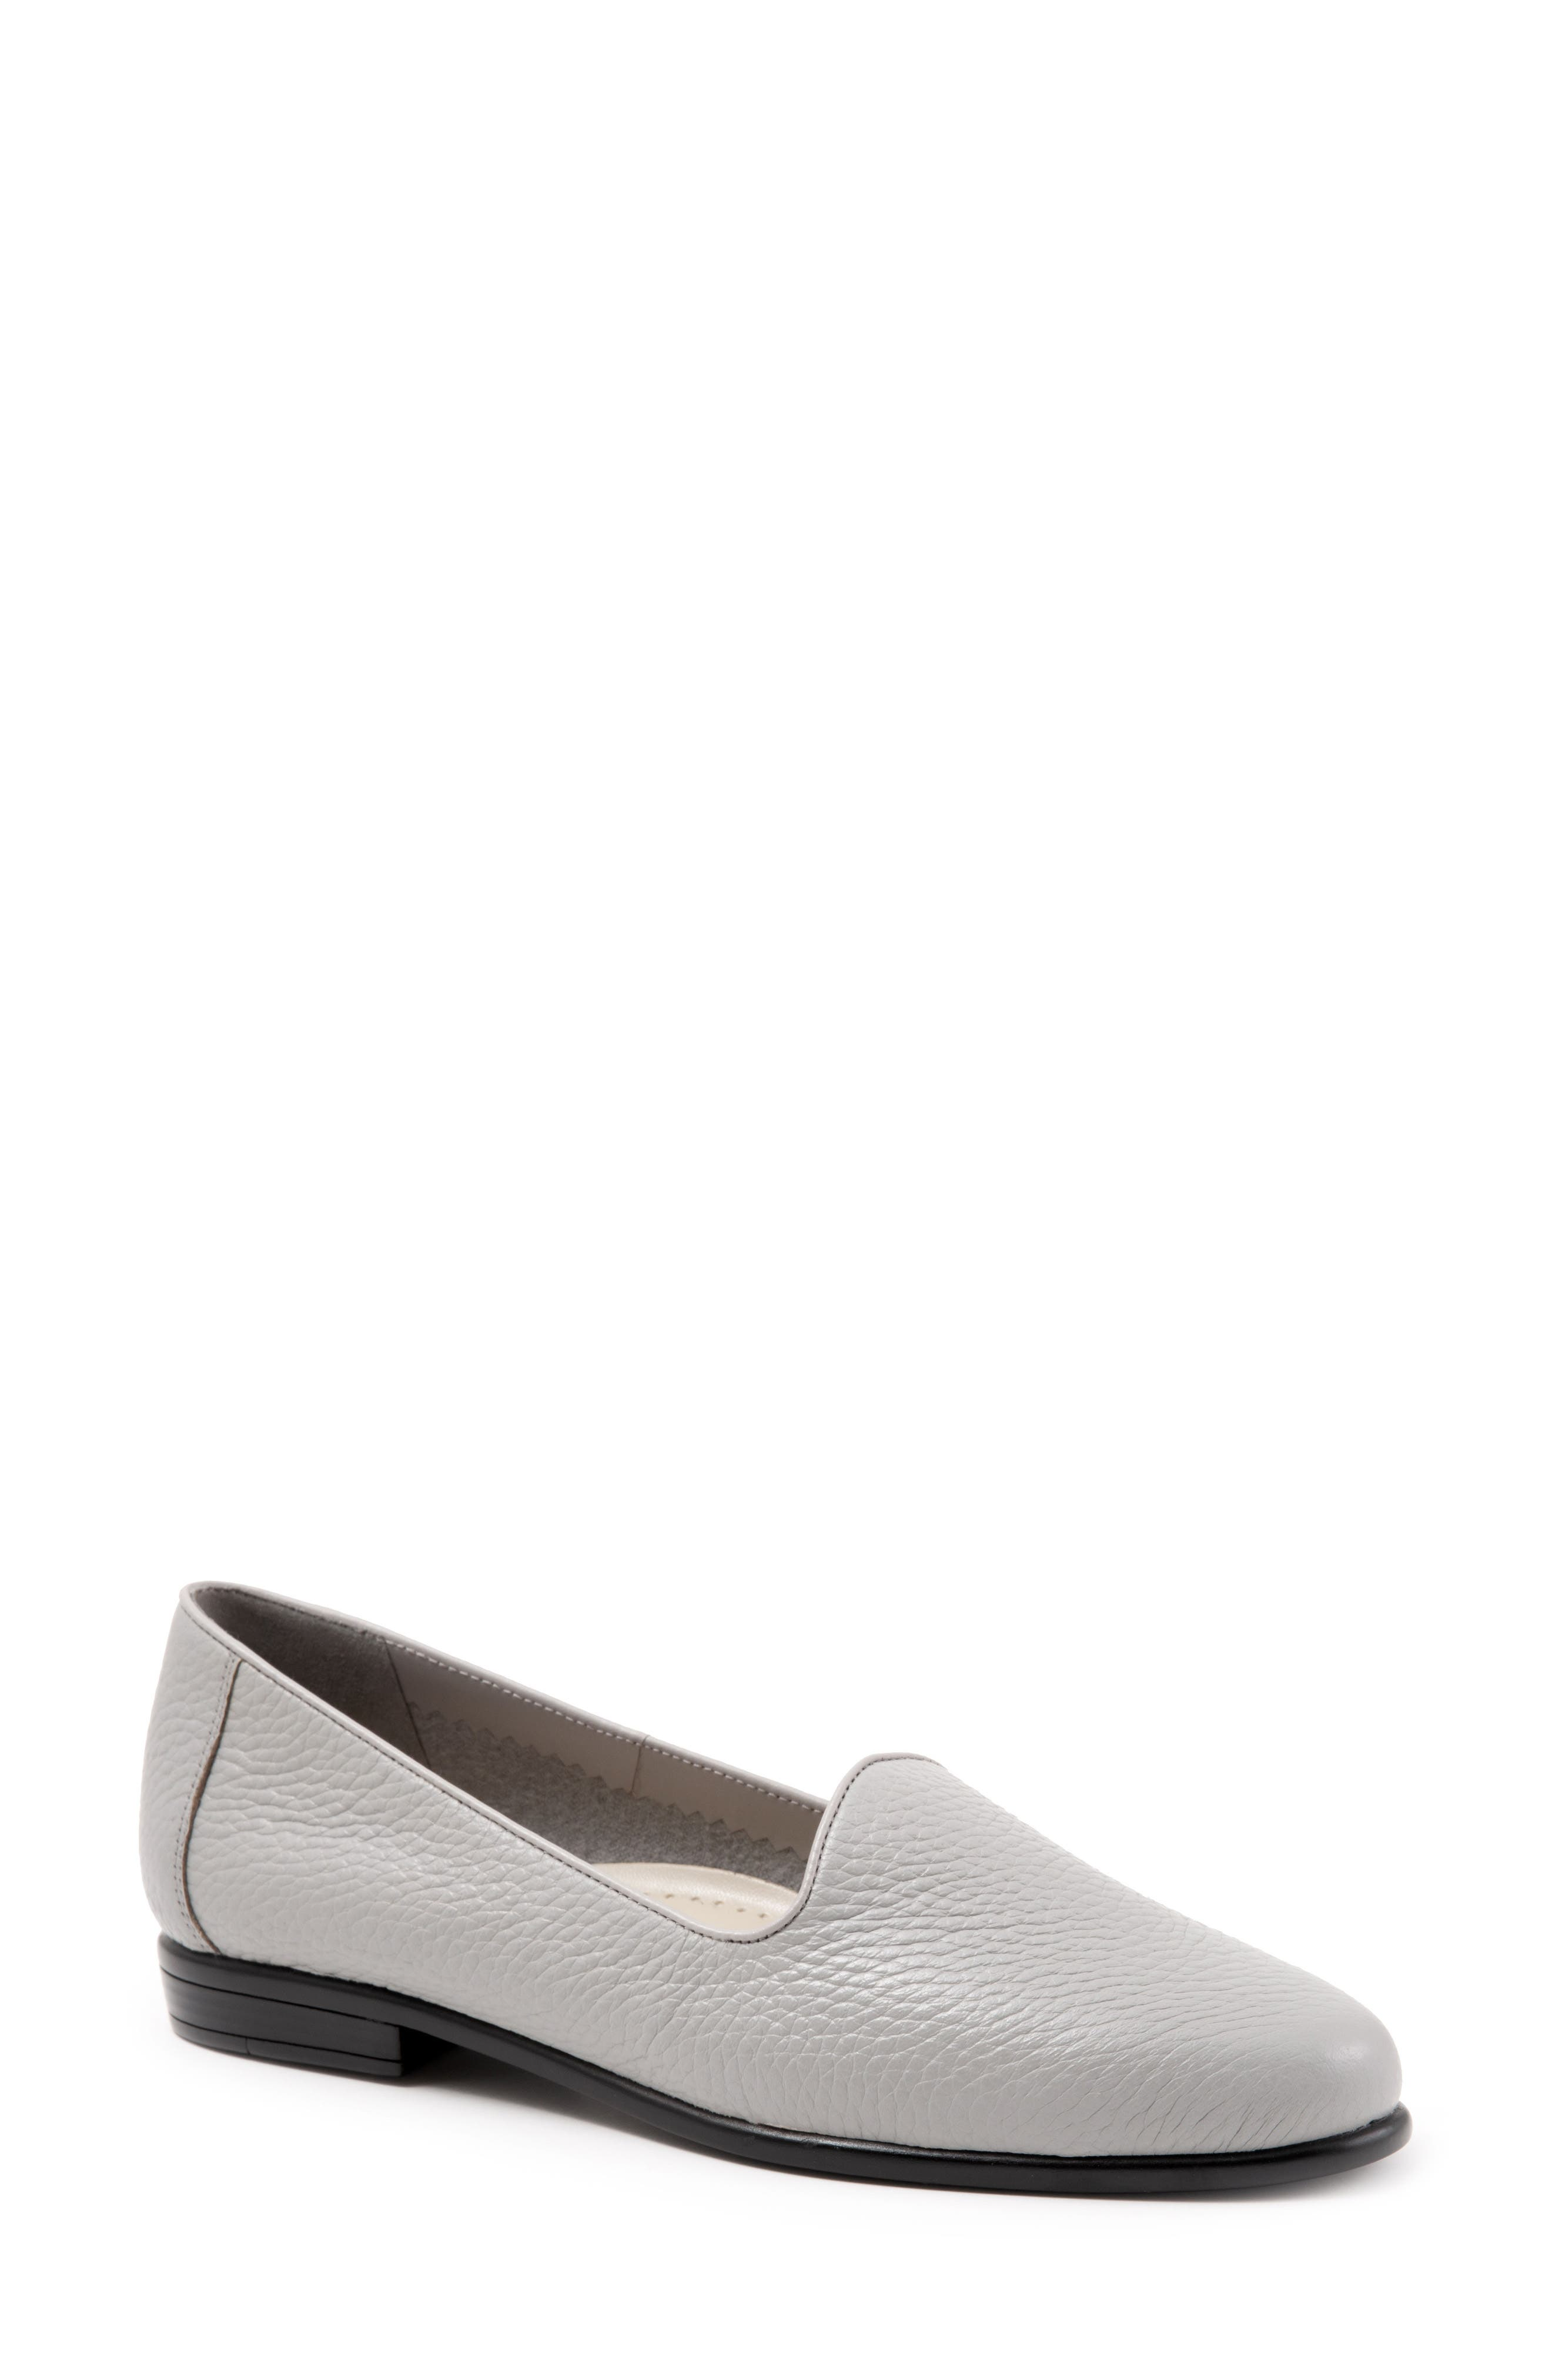 TROTTERS, Liz Loafer, Main thumbnail 1, color, GREY LEATHER